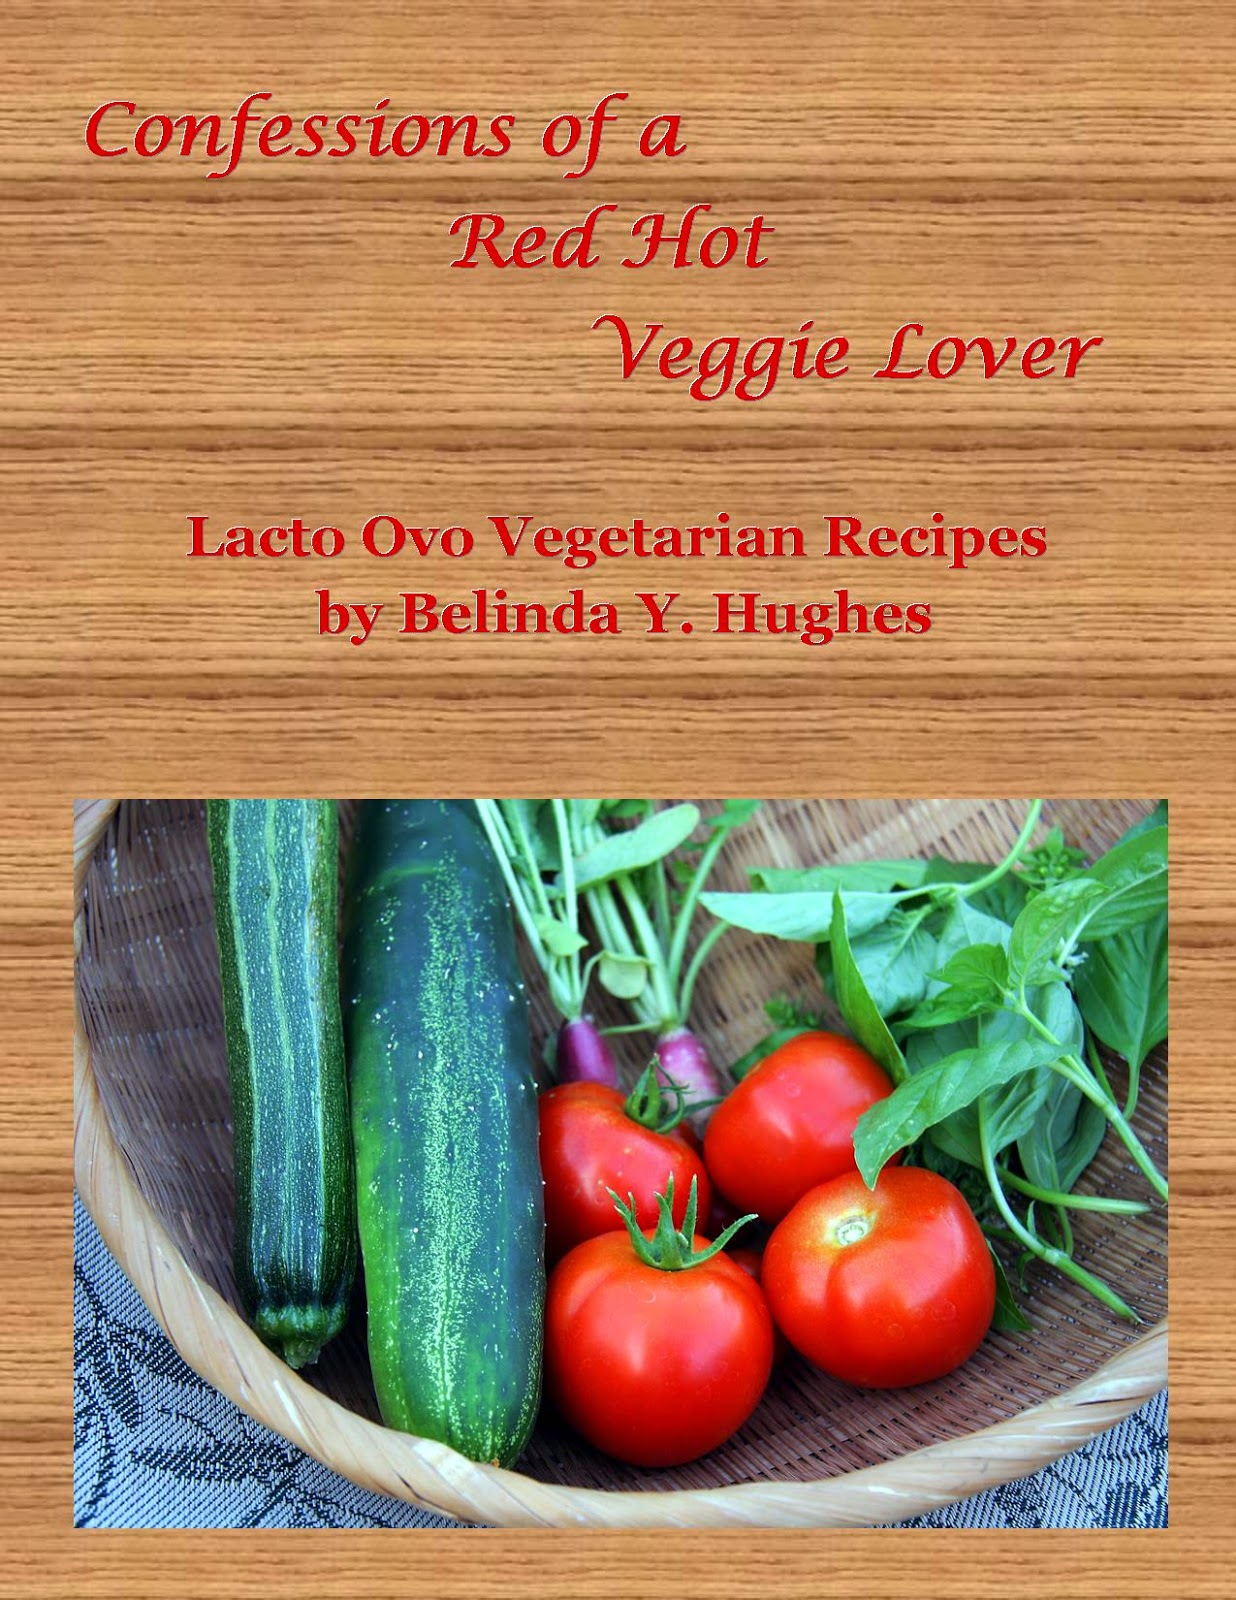 Confessions of a Red Hot Veggie Lover 2 Lacto Ovo Vegetarian Recipes